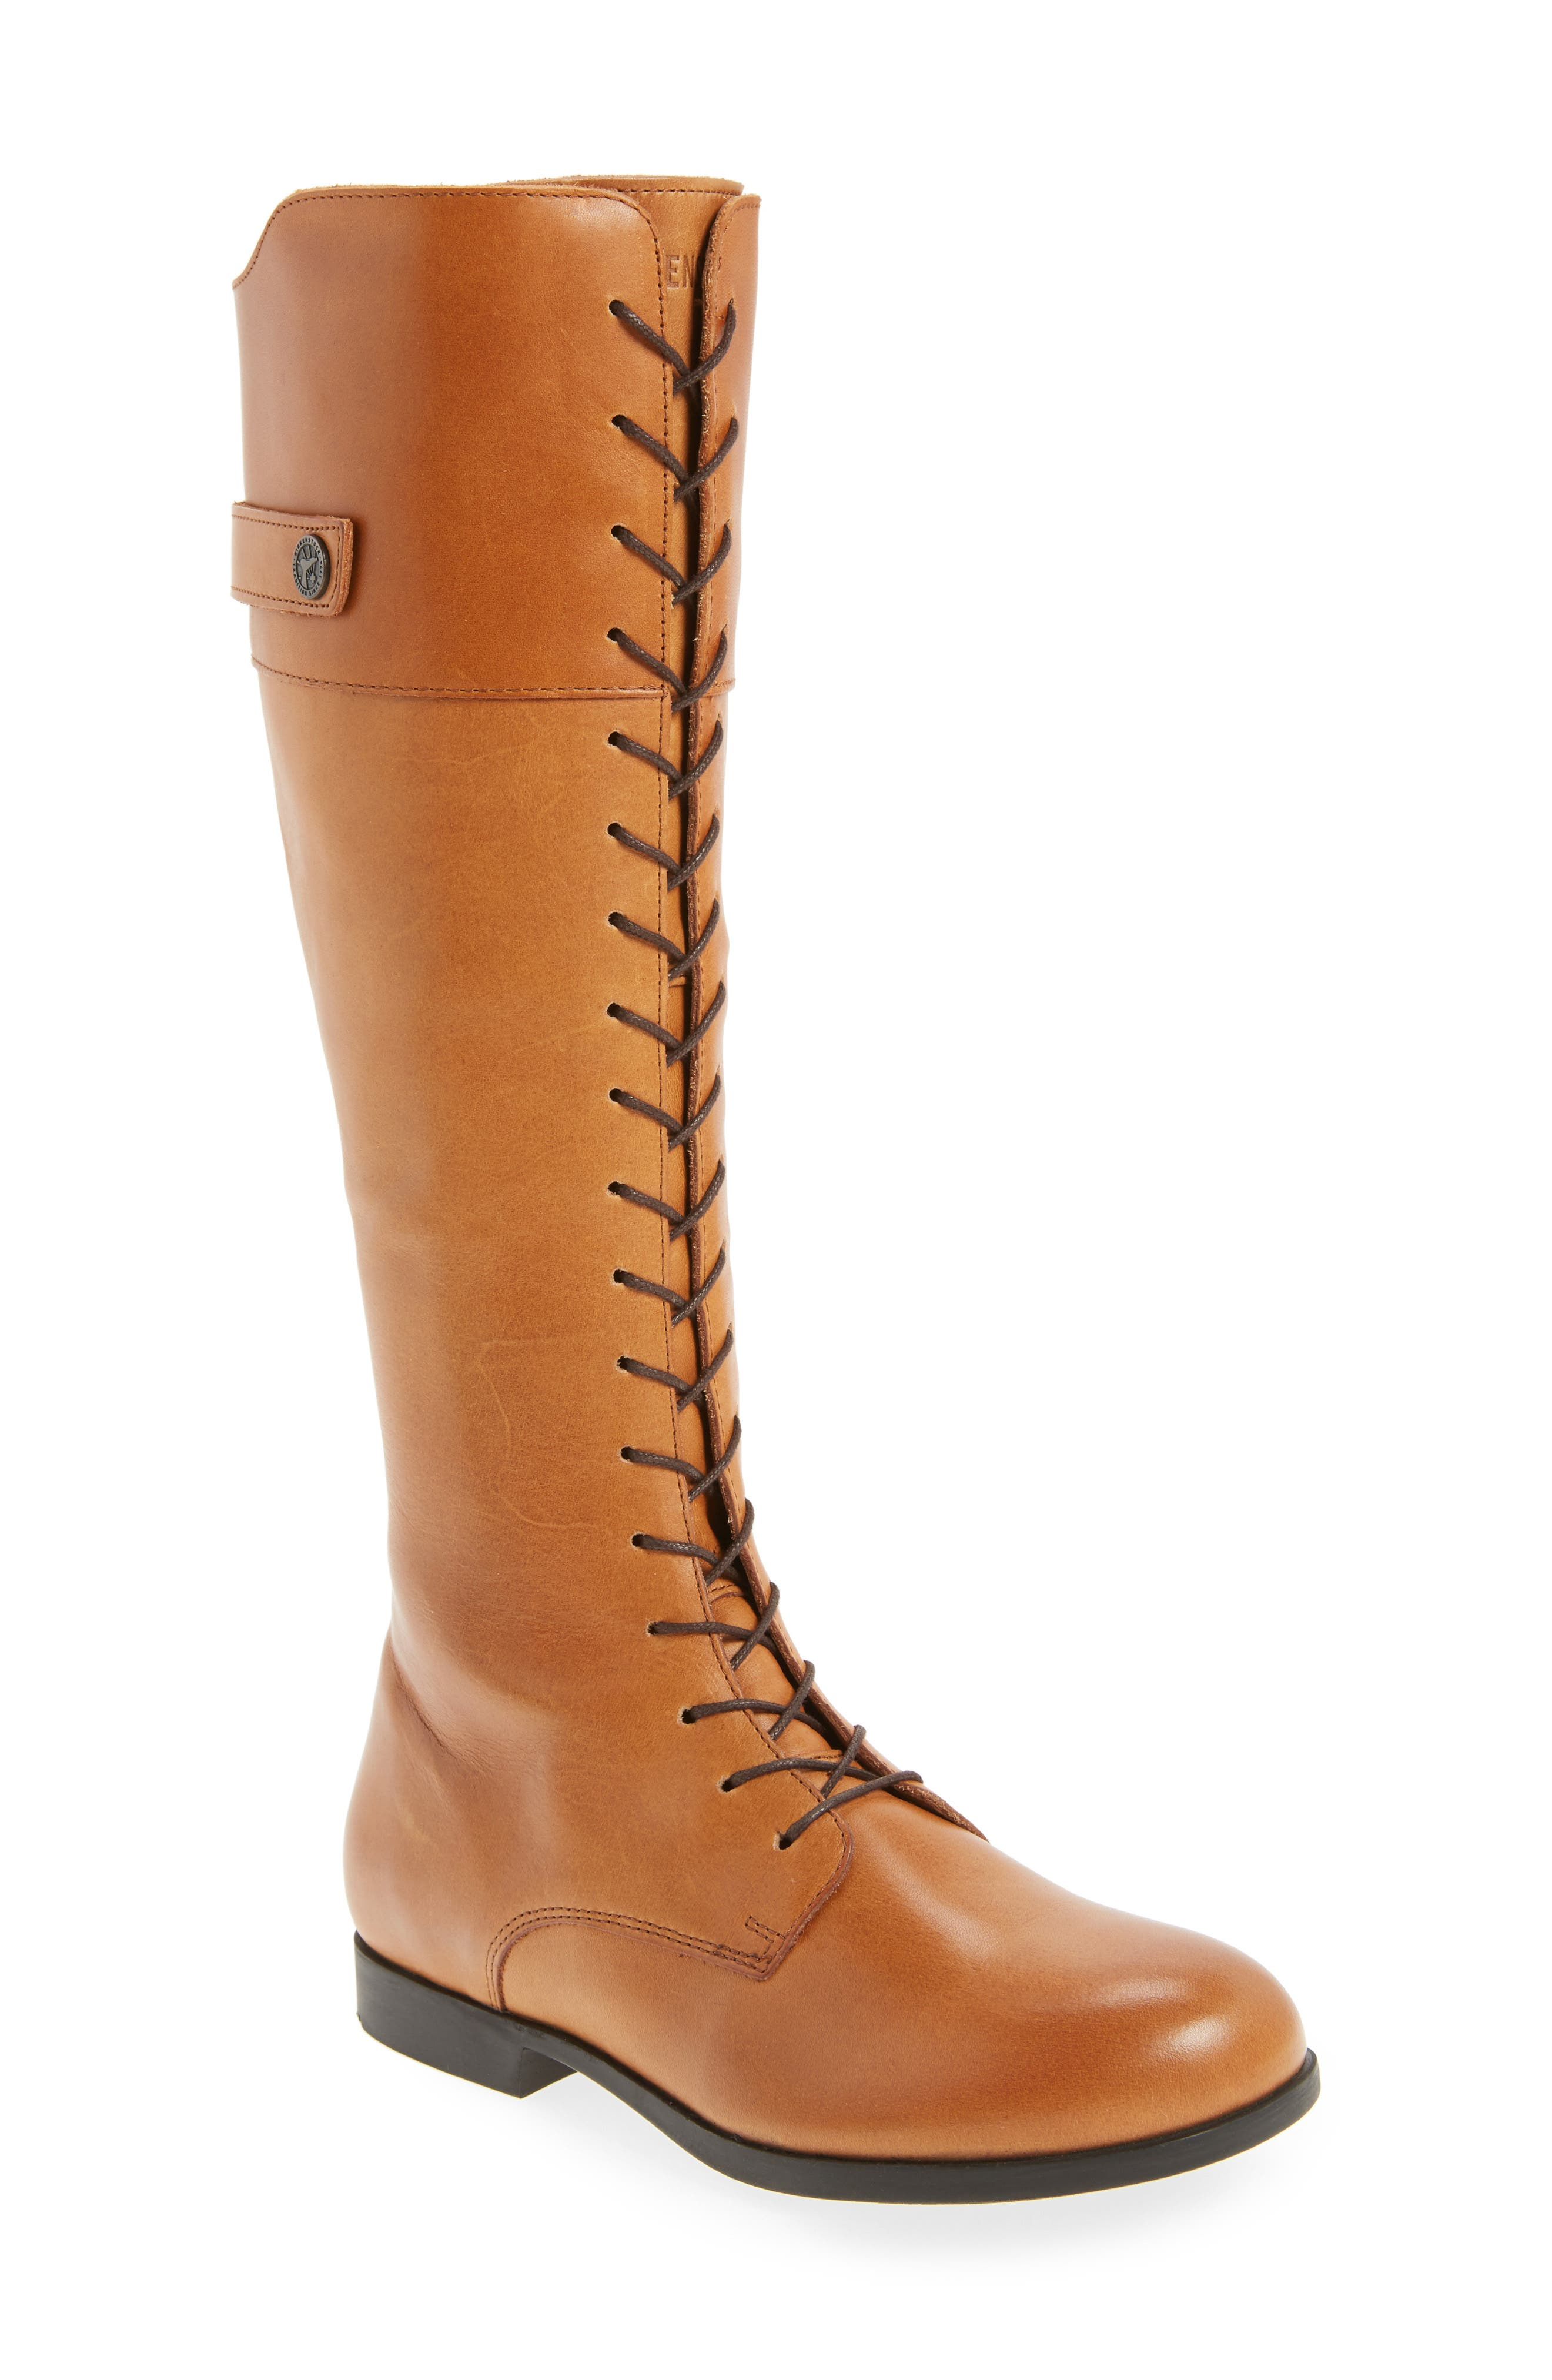 Longford Knee-High Lace-Up Boot,                             Main thumbnail 1, color,                             200